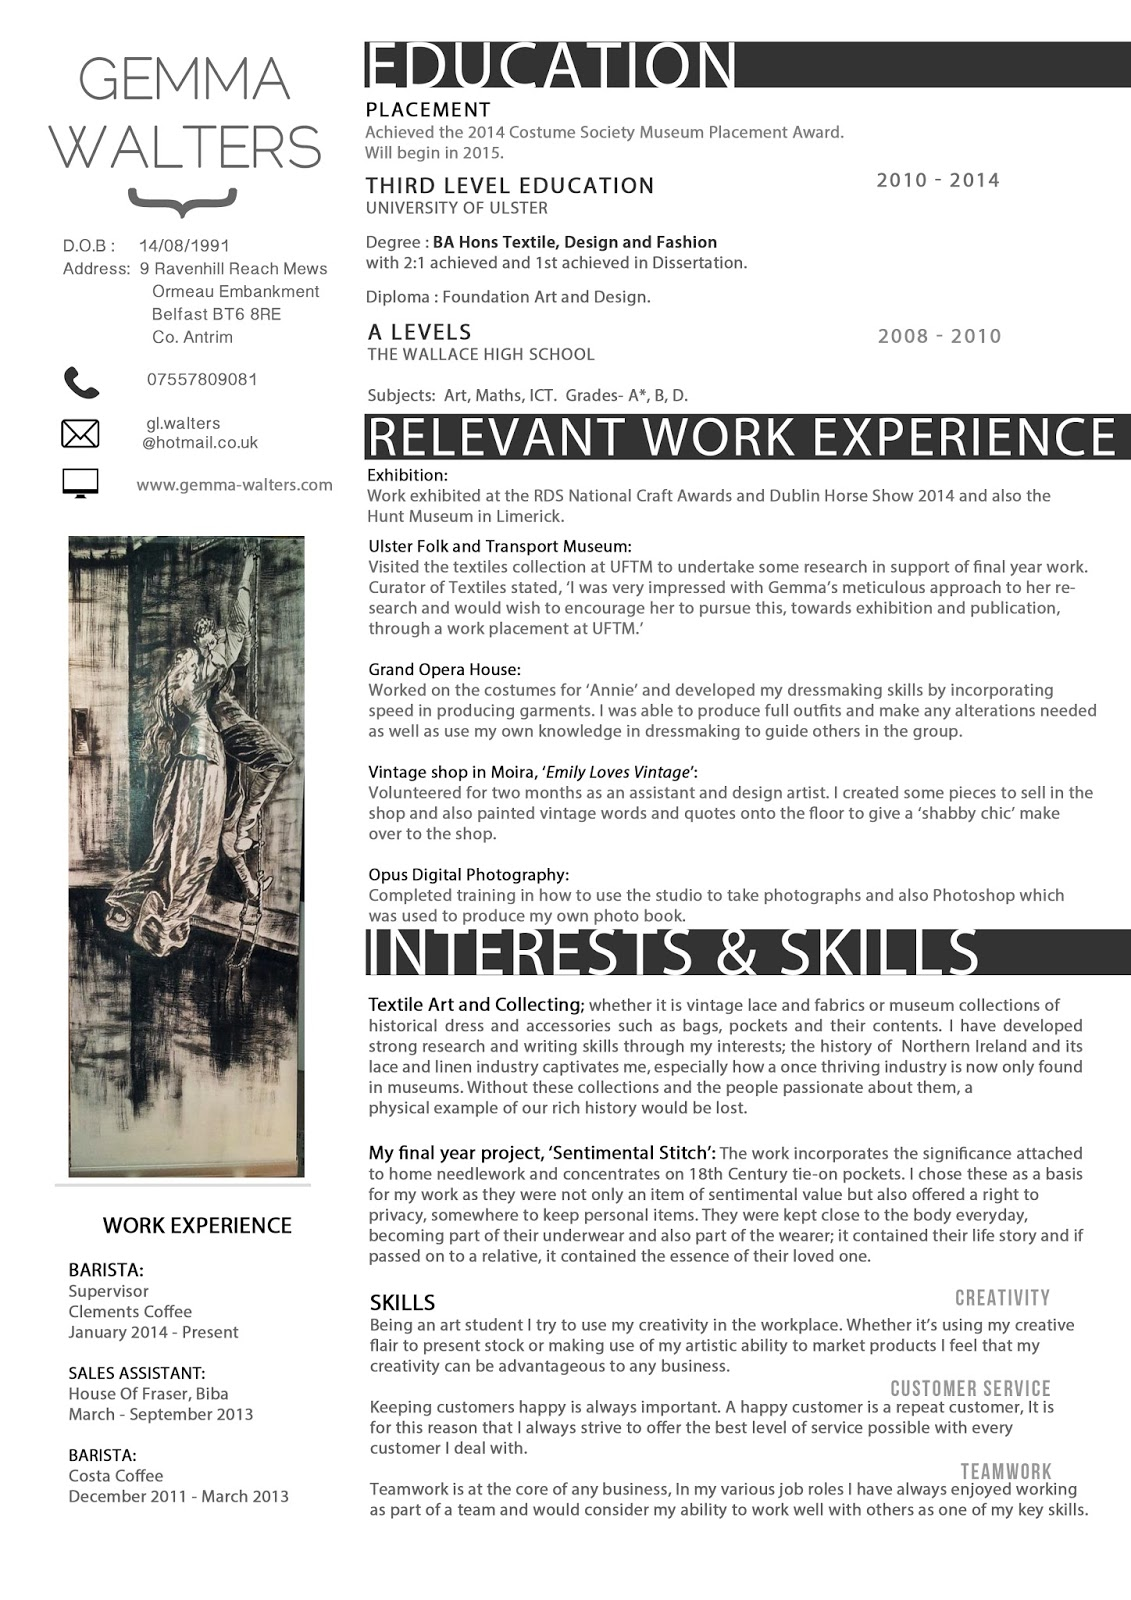 sample resume for web designer experienced possessions